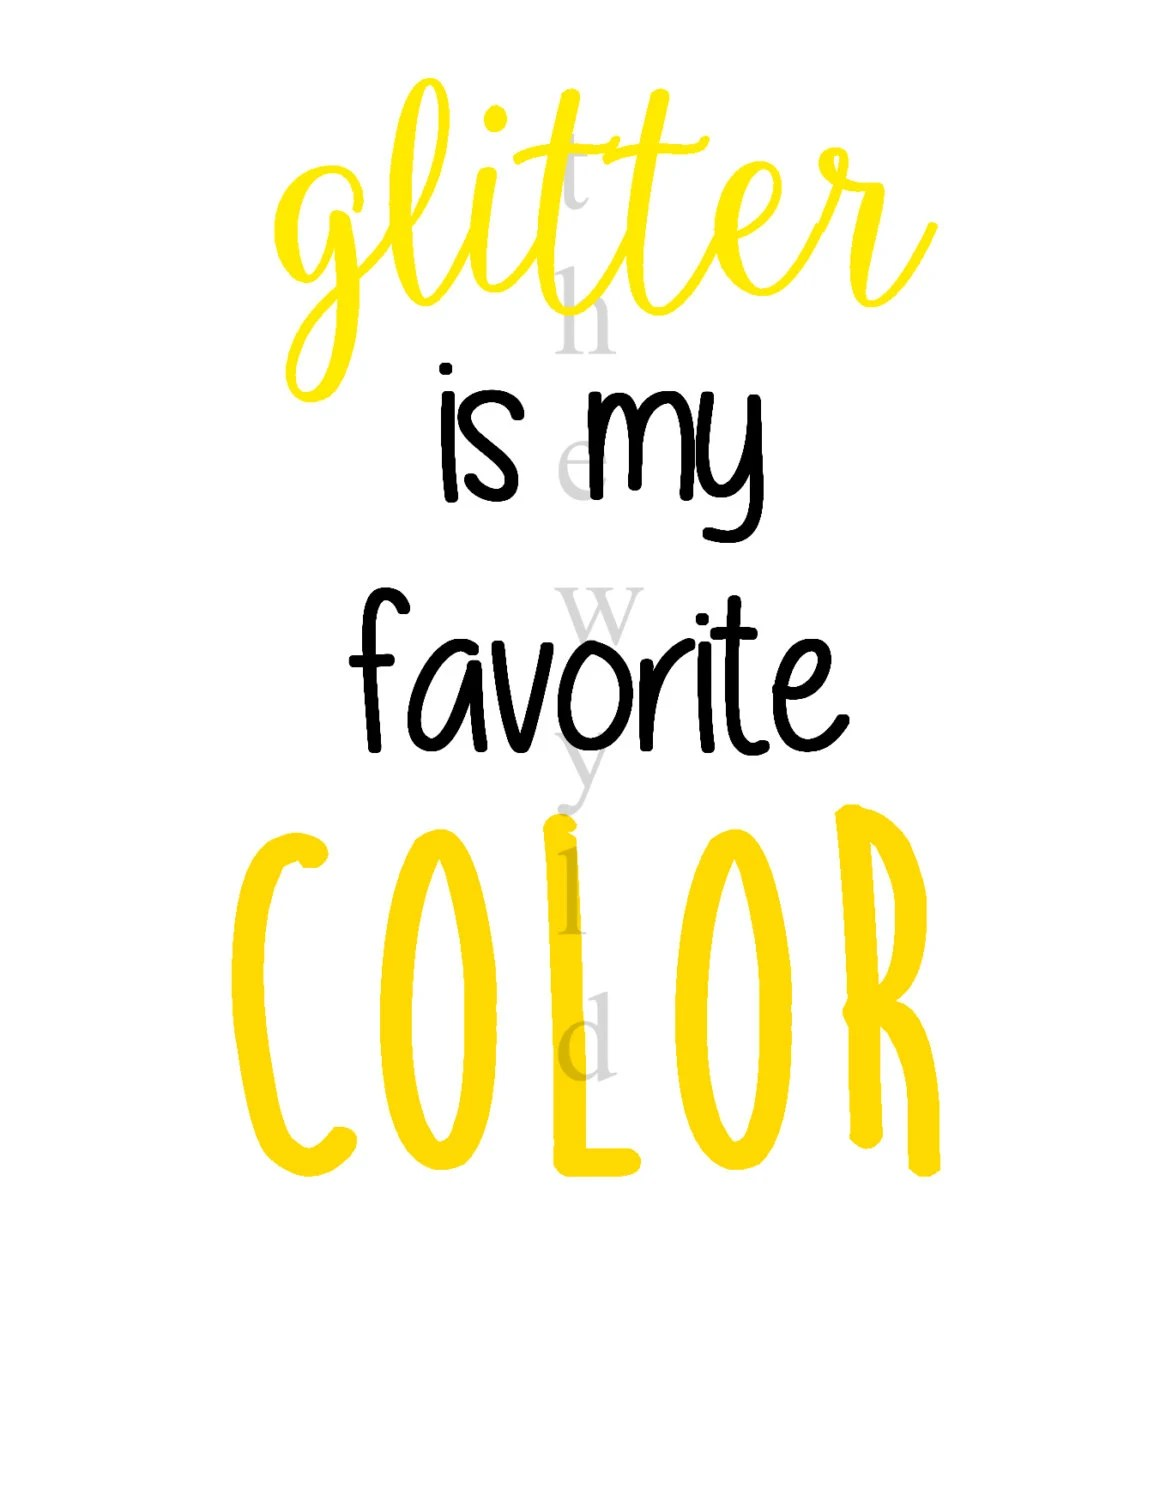 Svg Glitter Is My Favorite Color By Thewyldviolet On Etsy